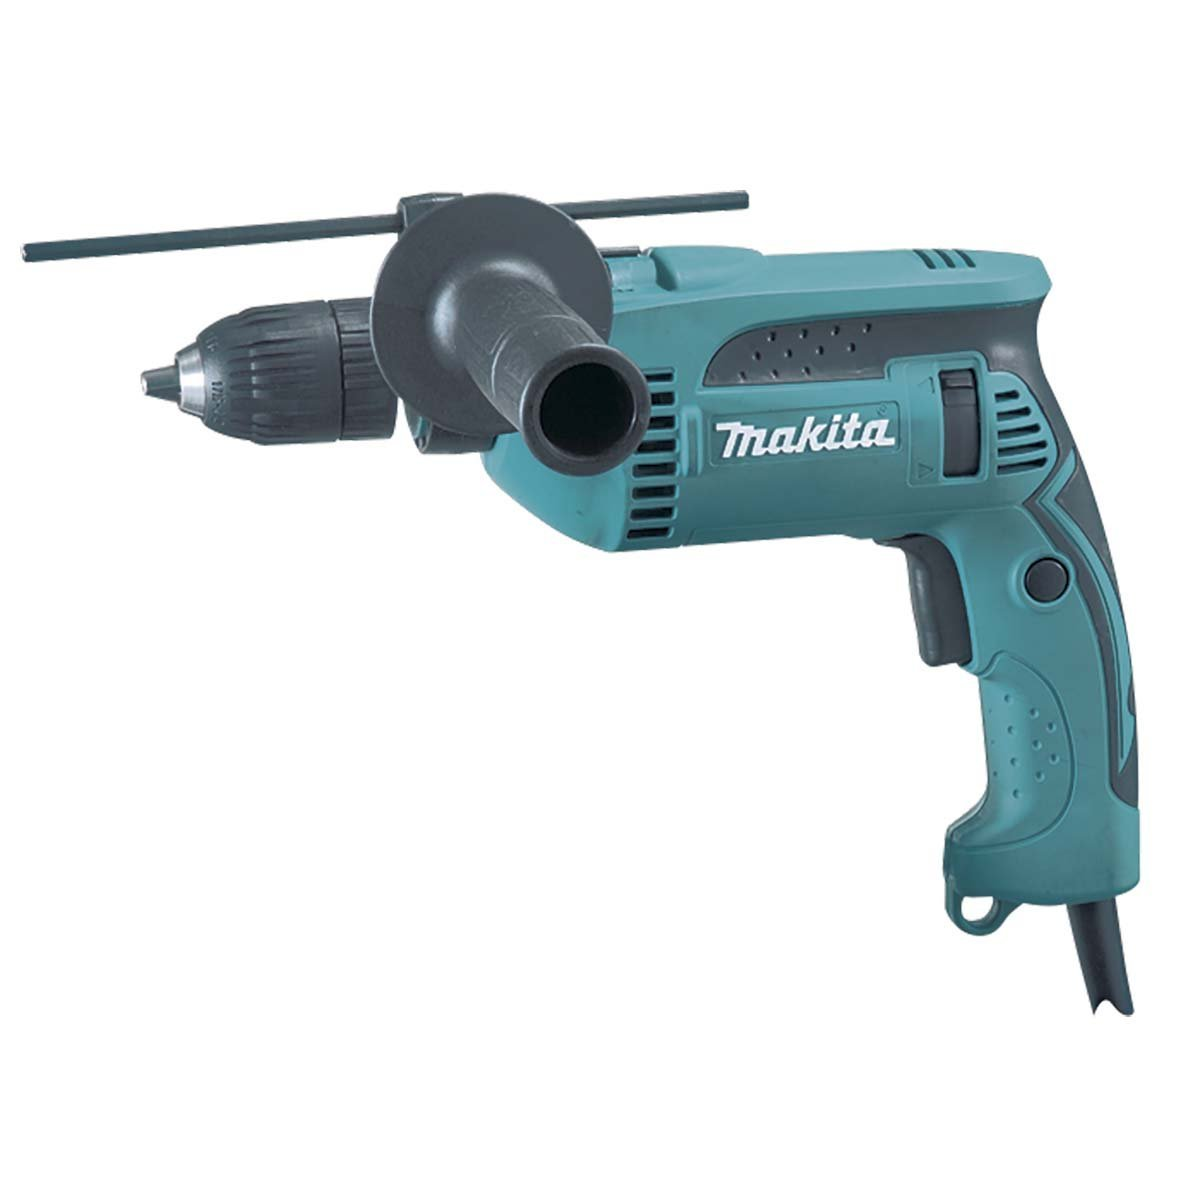 makita-drill-hammer-13mm-chuck